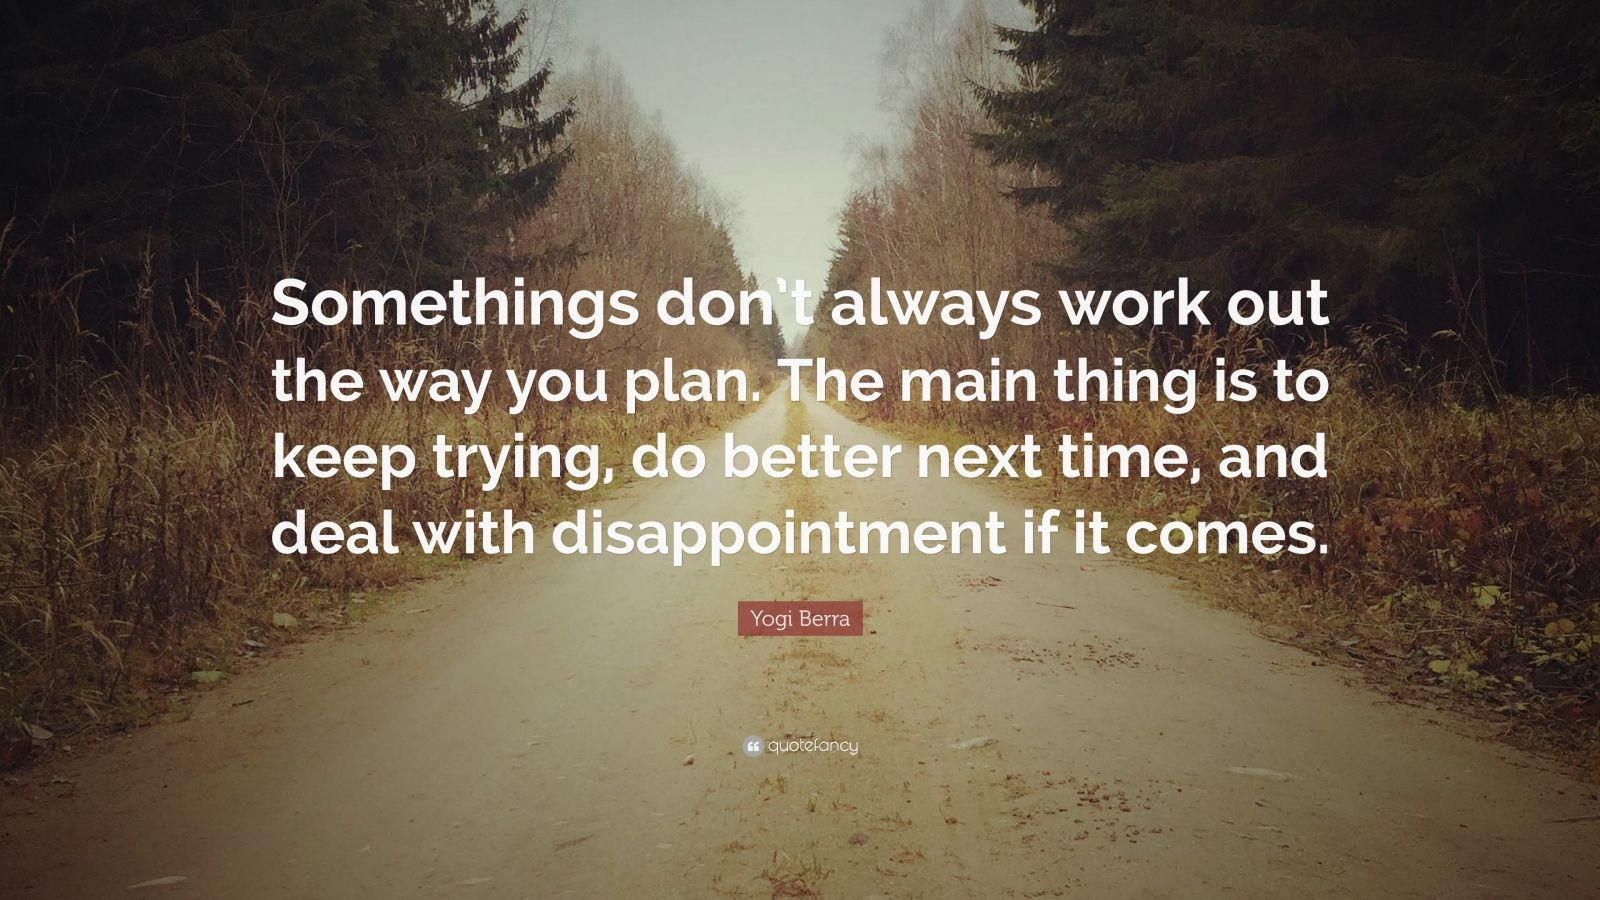 "Yogi Berra Quote: ""Somethings don't always work out the way you plan. The main thing is to keep trying, do better next time, and deal with disappointment if it comes."""